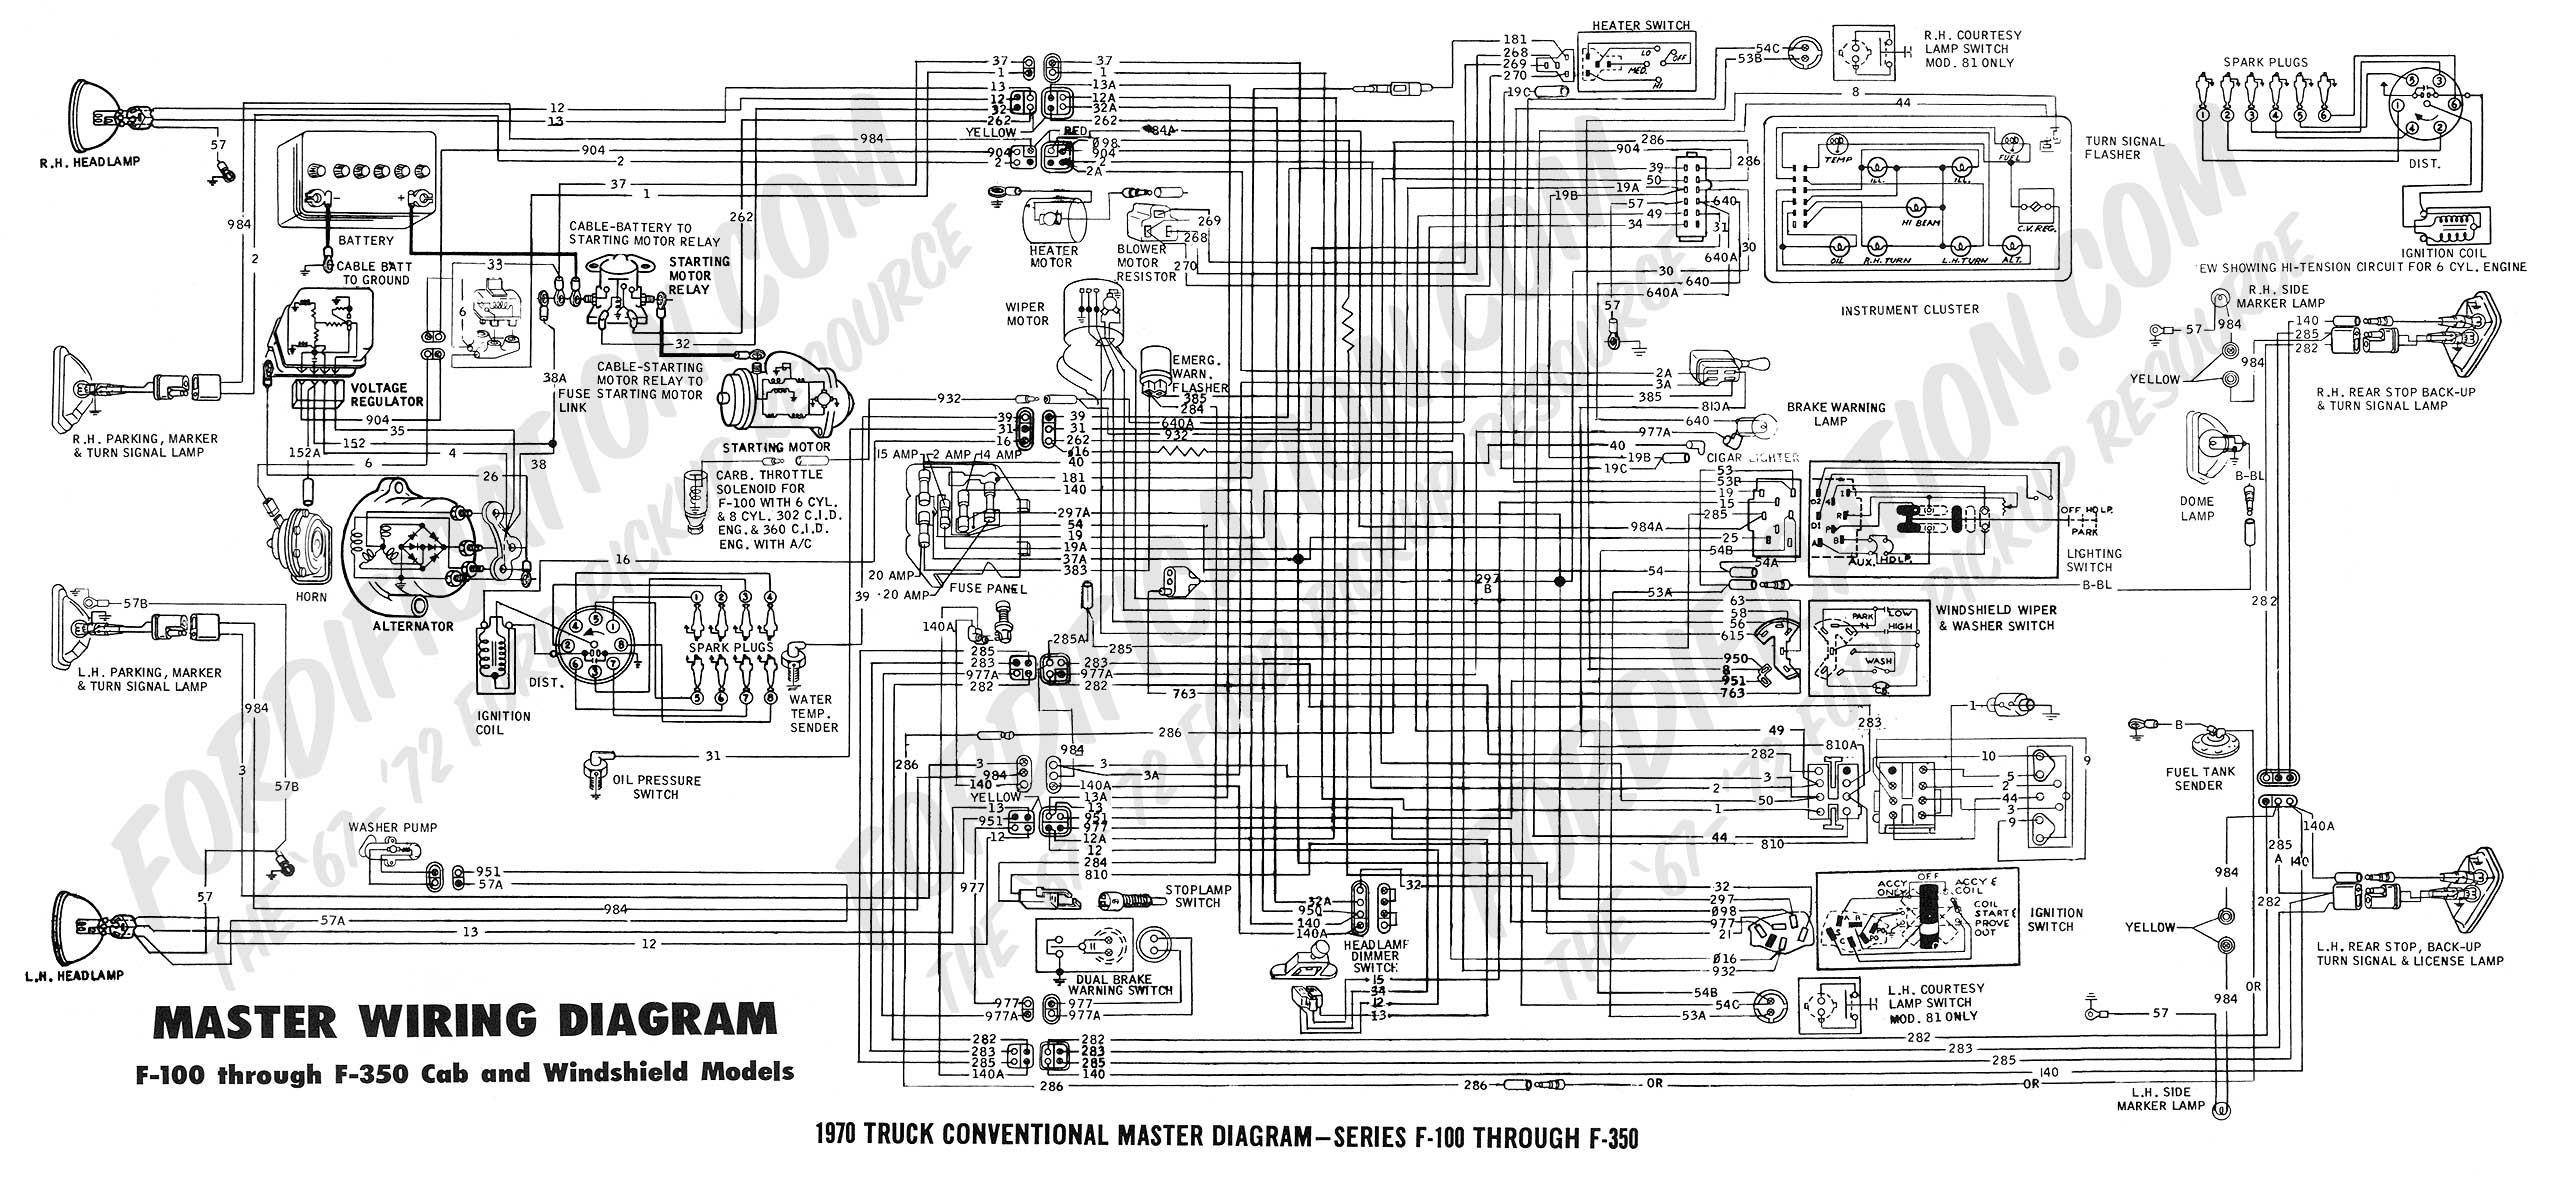 ford escape engine diagram ford escape timing wiring diagram for car 1988 Mustang Engine 4Clder ford xr wiring diagram ford wiring diagrams online